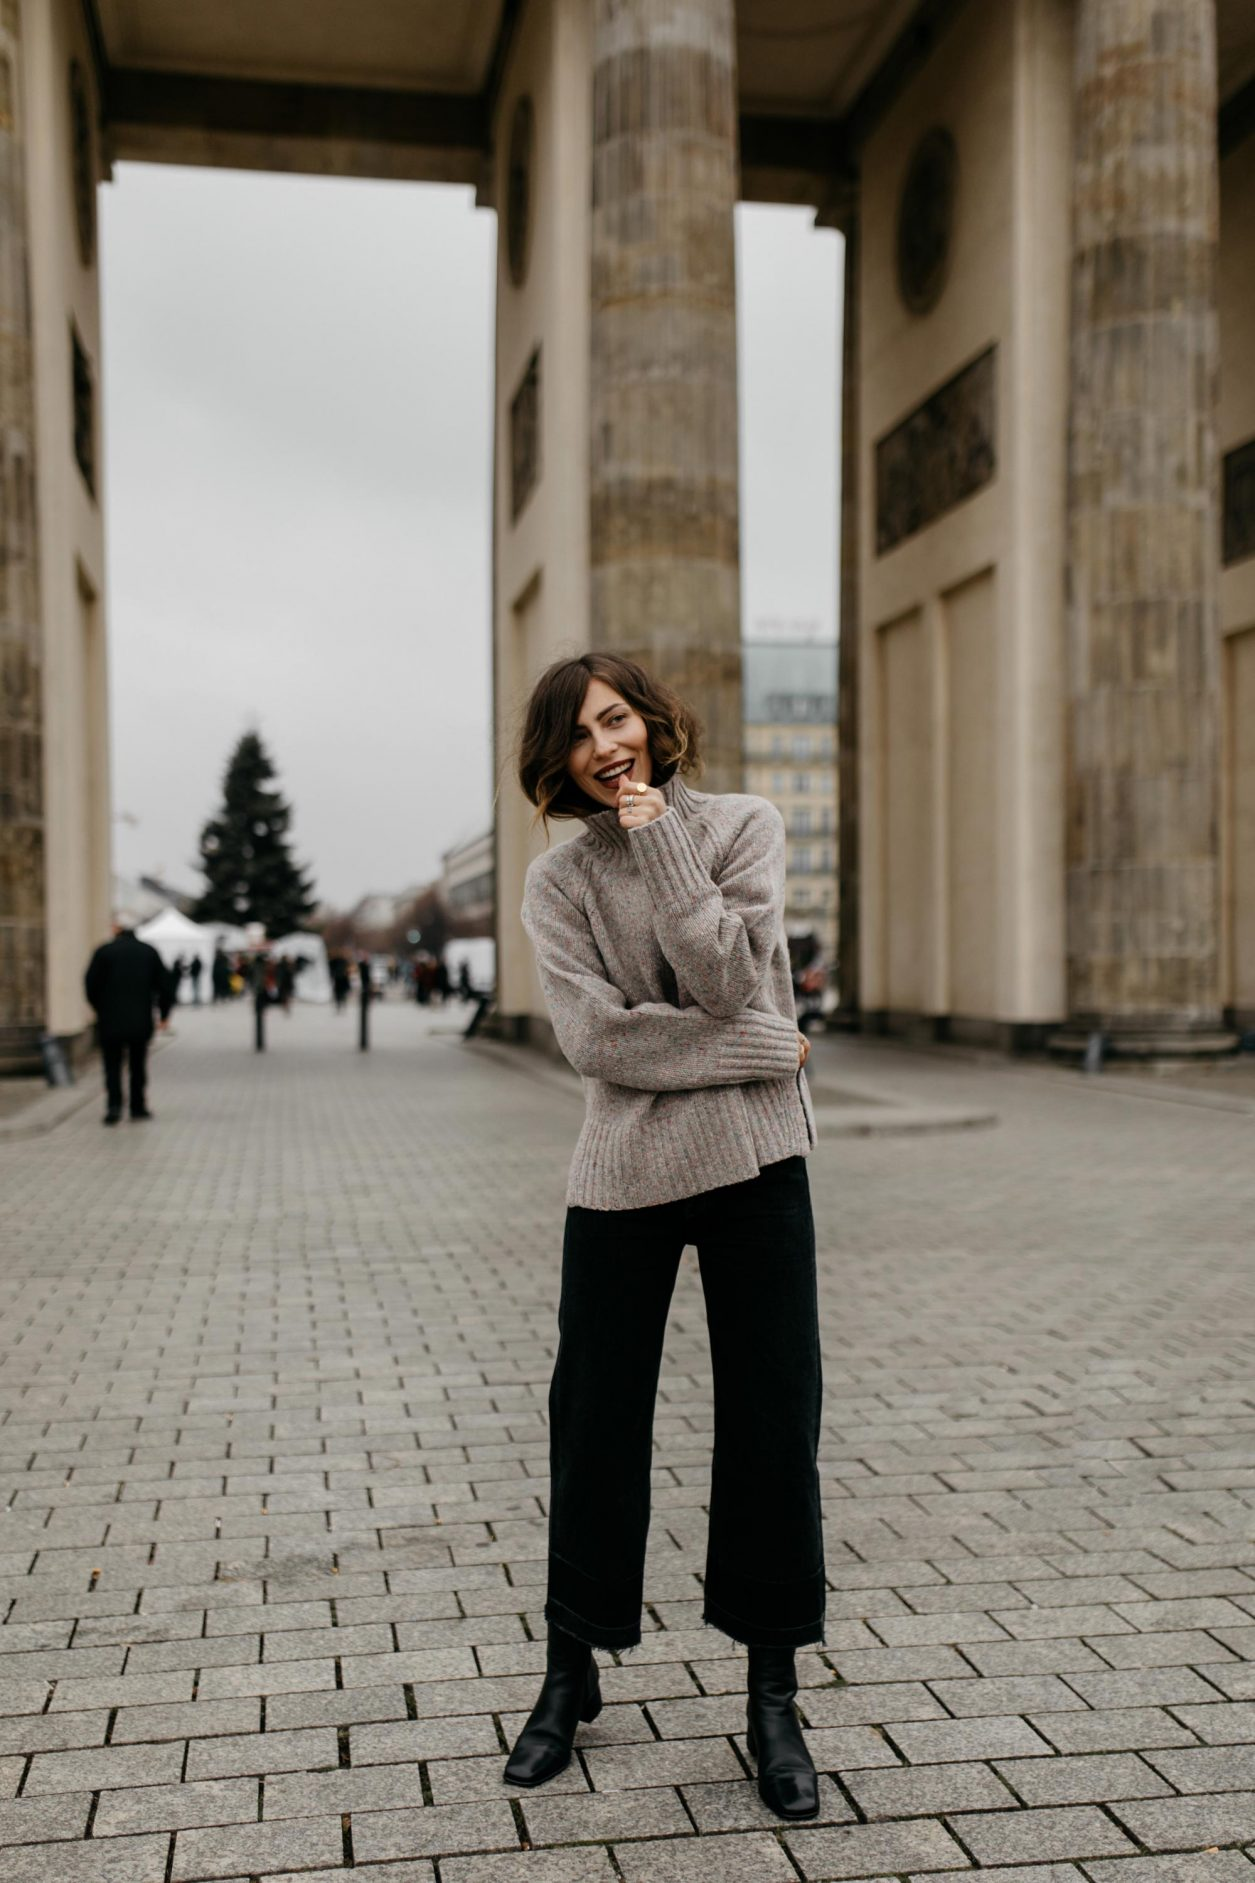 Streetstyle by Masha Sedgwick at the Brandenburger Gate | AW 19 outfit: brown knit Closed, black bootcut jeans Citizens of Humanity , black leather boots Filippa K | Berlin sightseeing photo spot